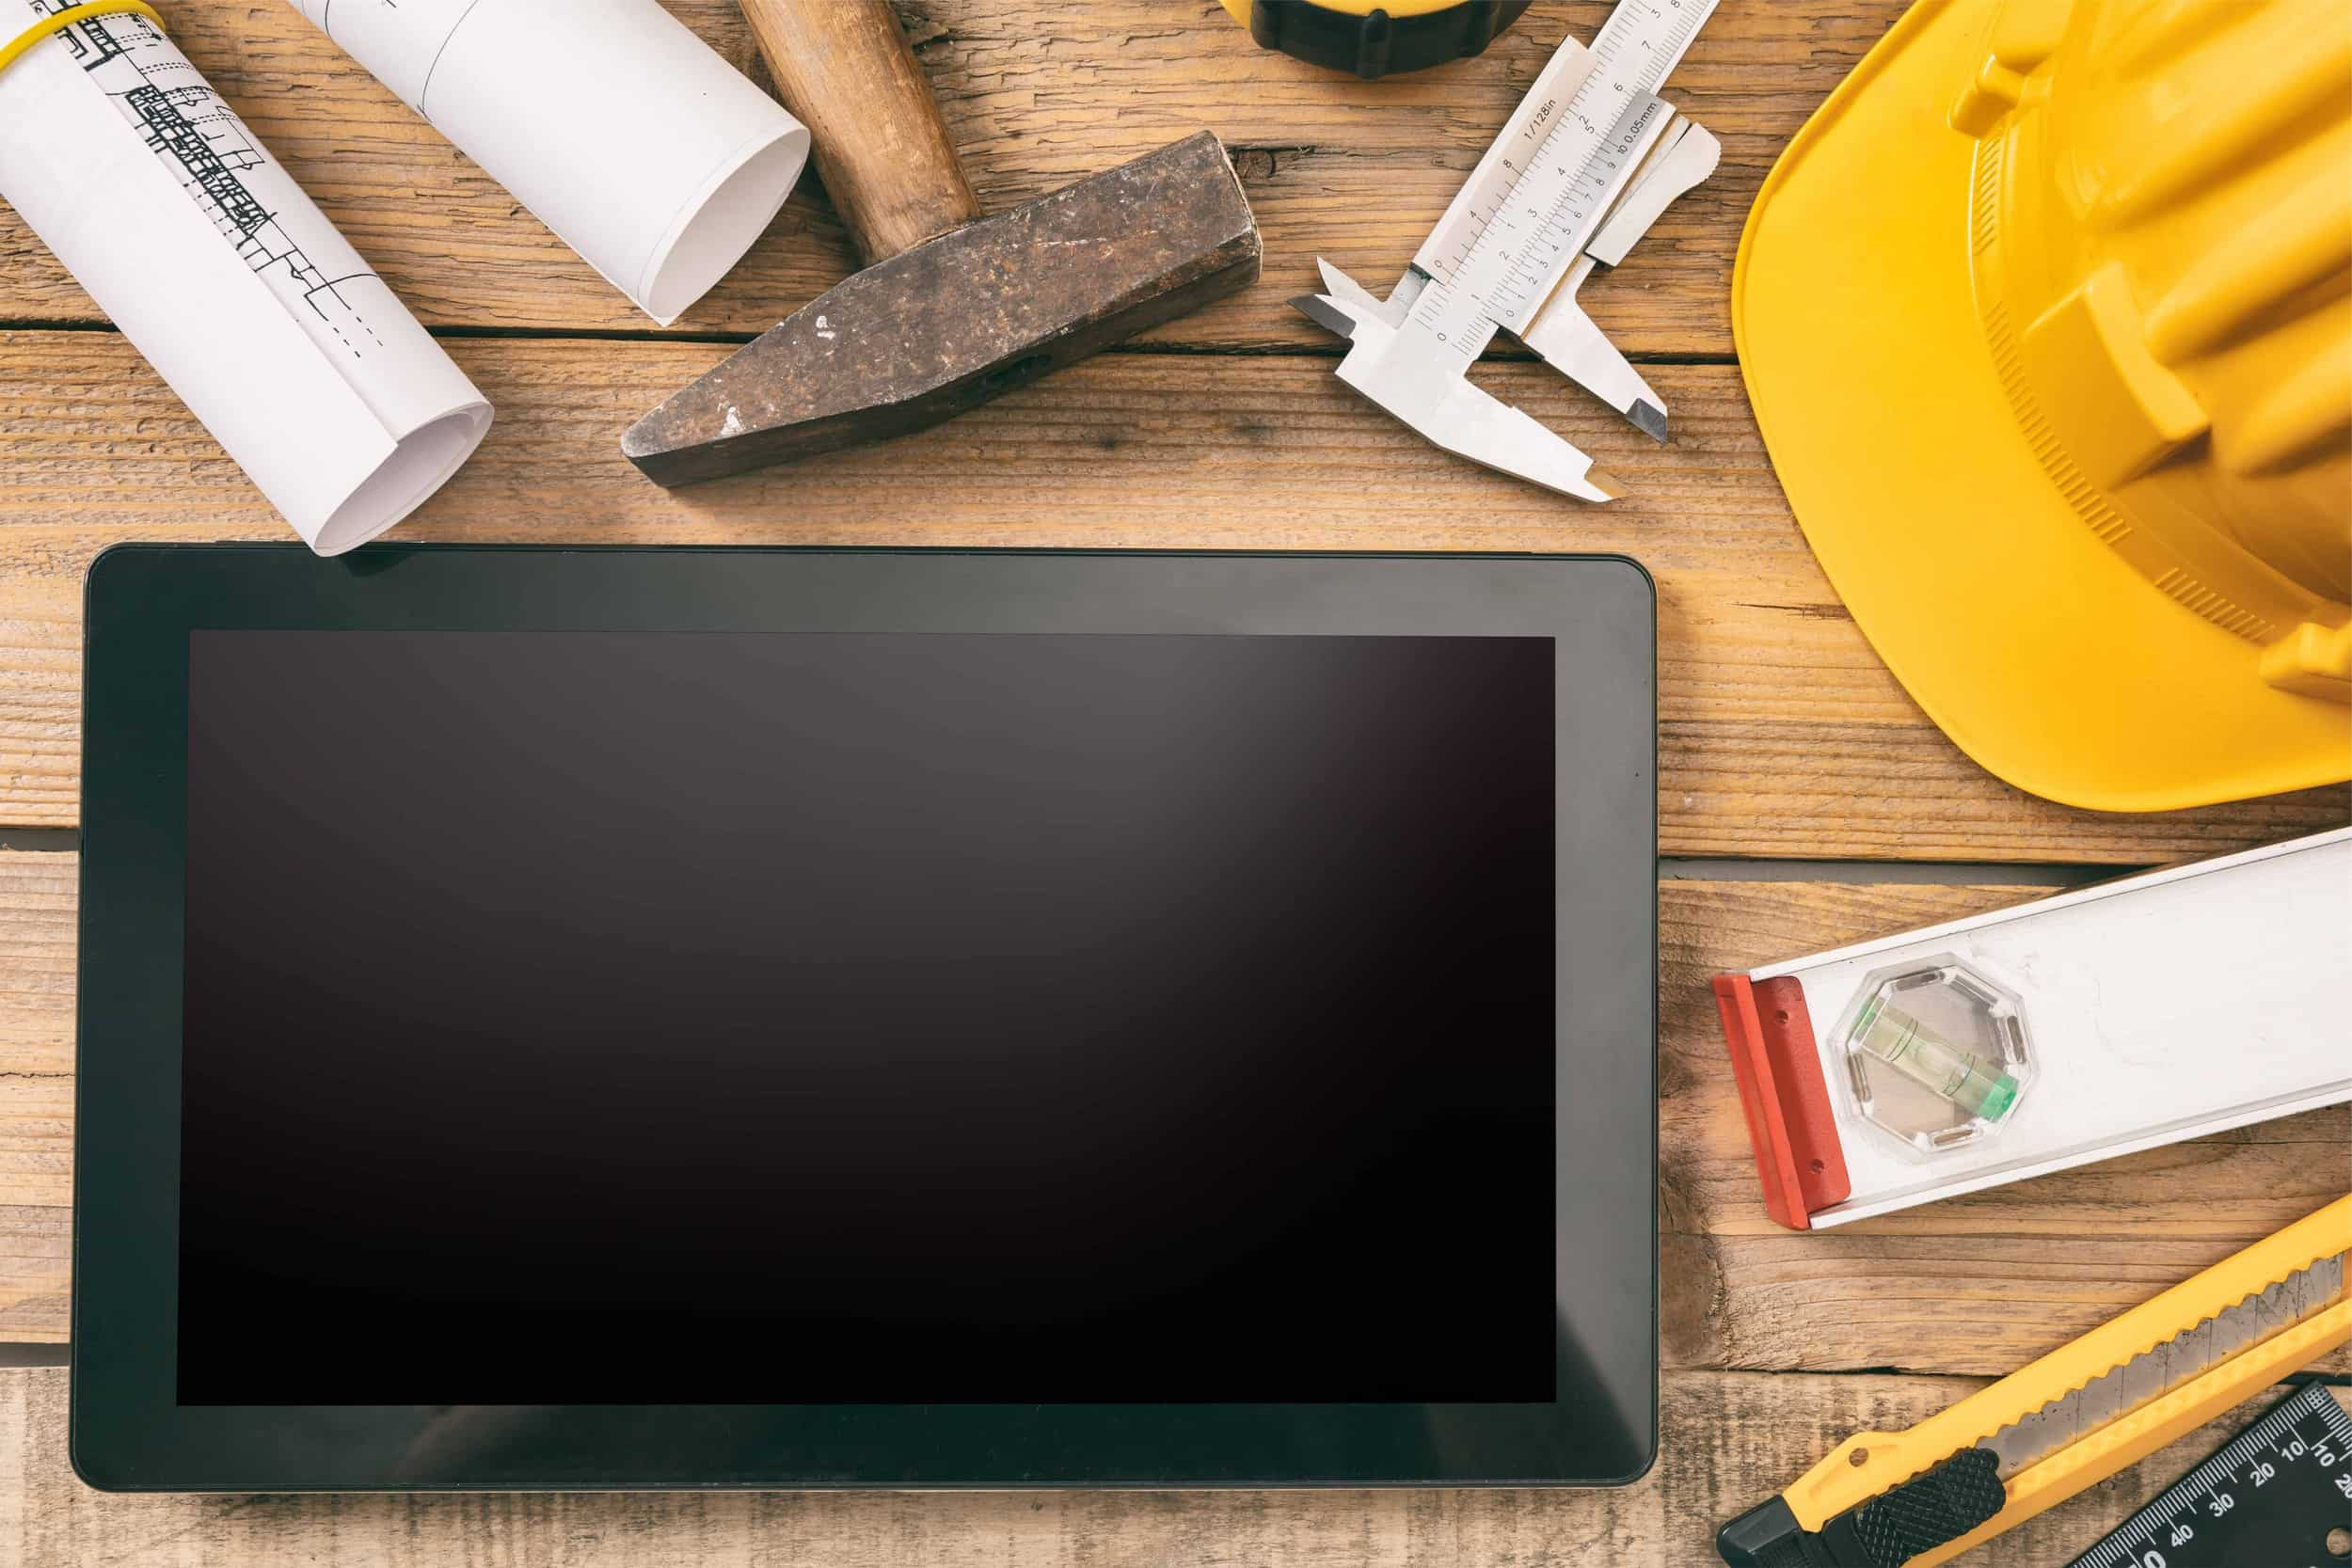 Architect workplace and technology. Tablet with black blank screen, project construction blueprints and engineering tools on wooden desk, copy space, top view